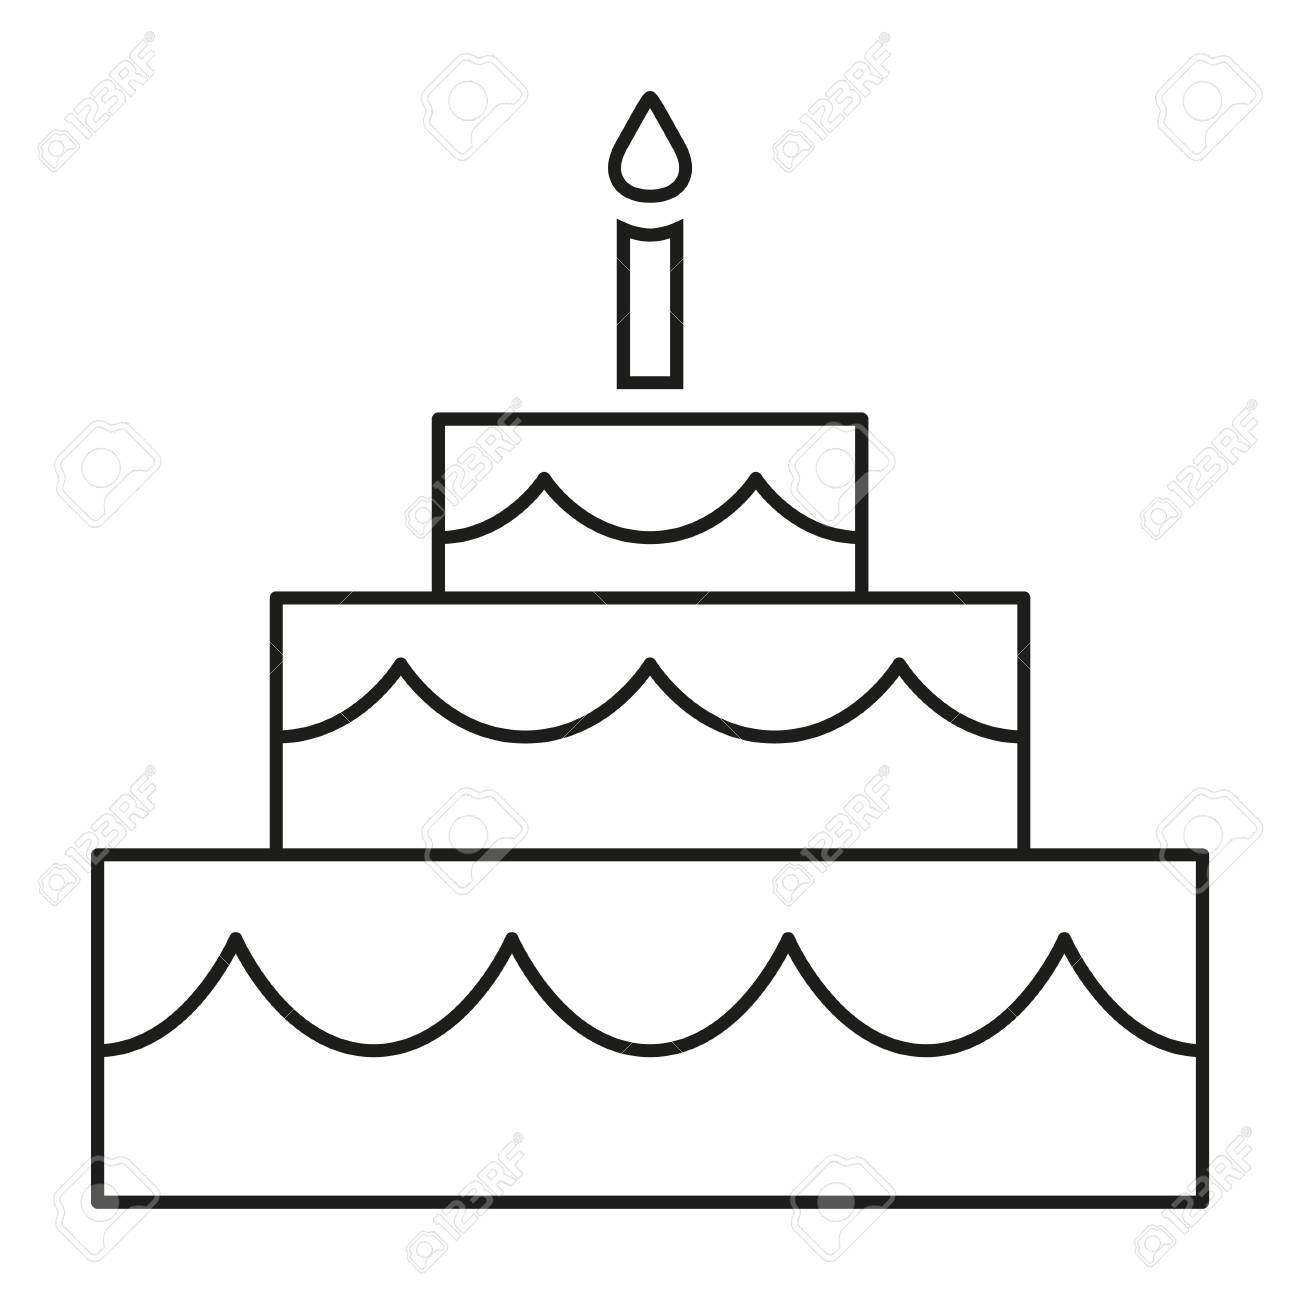 Terrific Line Art Black And White Birthday Cake Coloring Page For Adults Funny Birthday Cards Online Alyptdamsfinfo